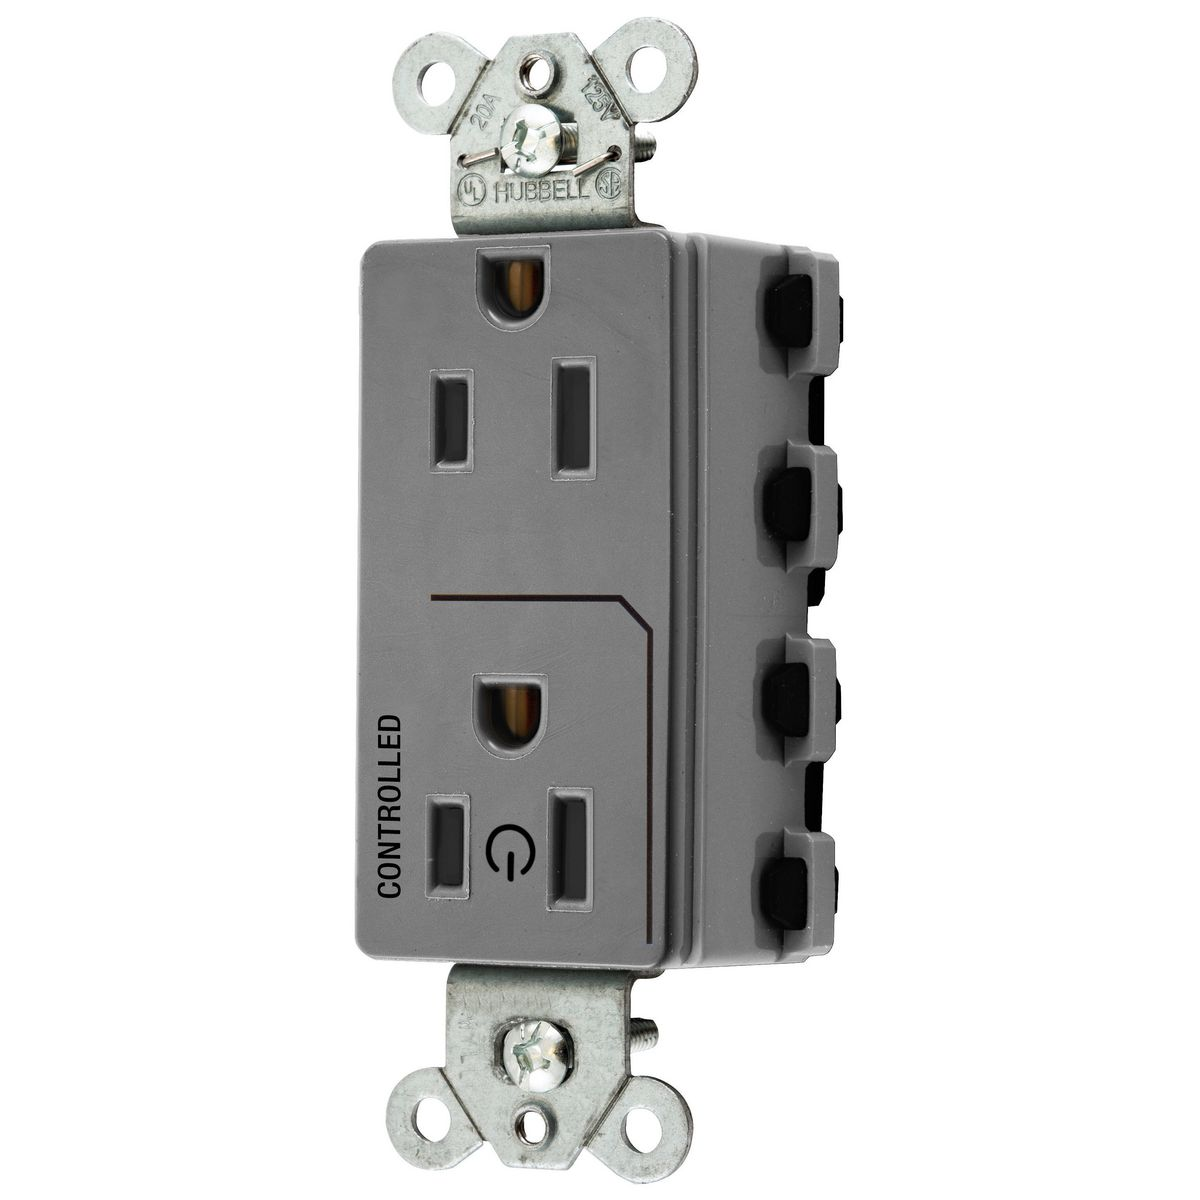 SNAP2152C1GY | SnapConnect Receptacles | Straight Blade Devices ...